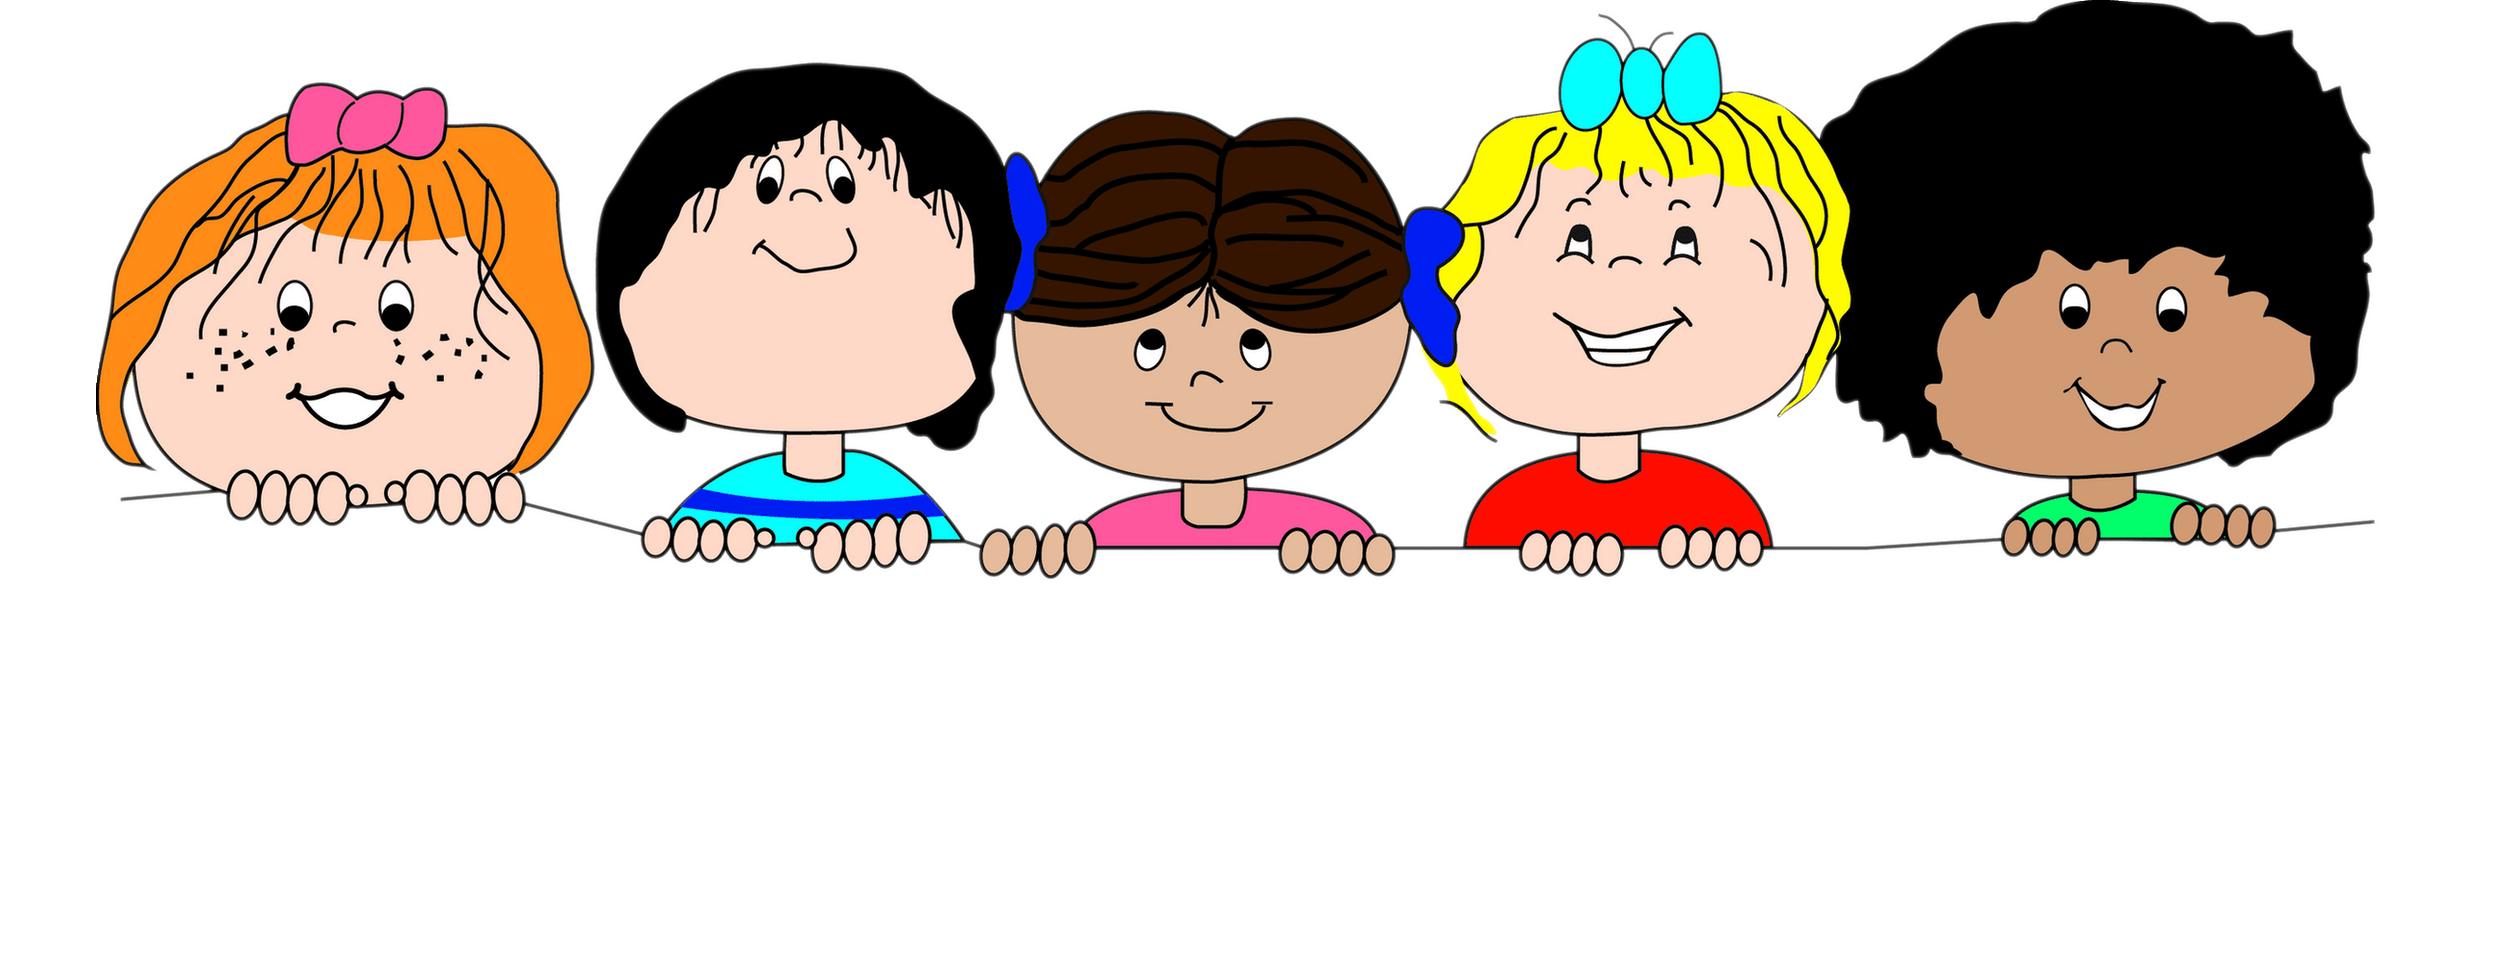 Children's Dental Health Center